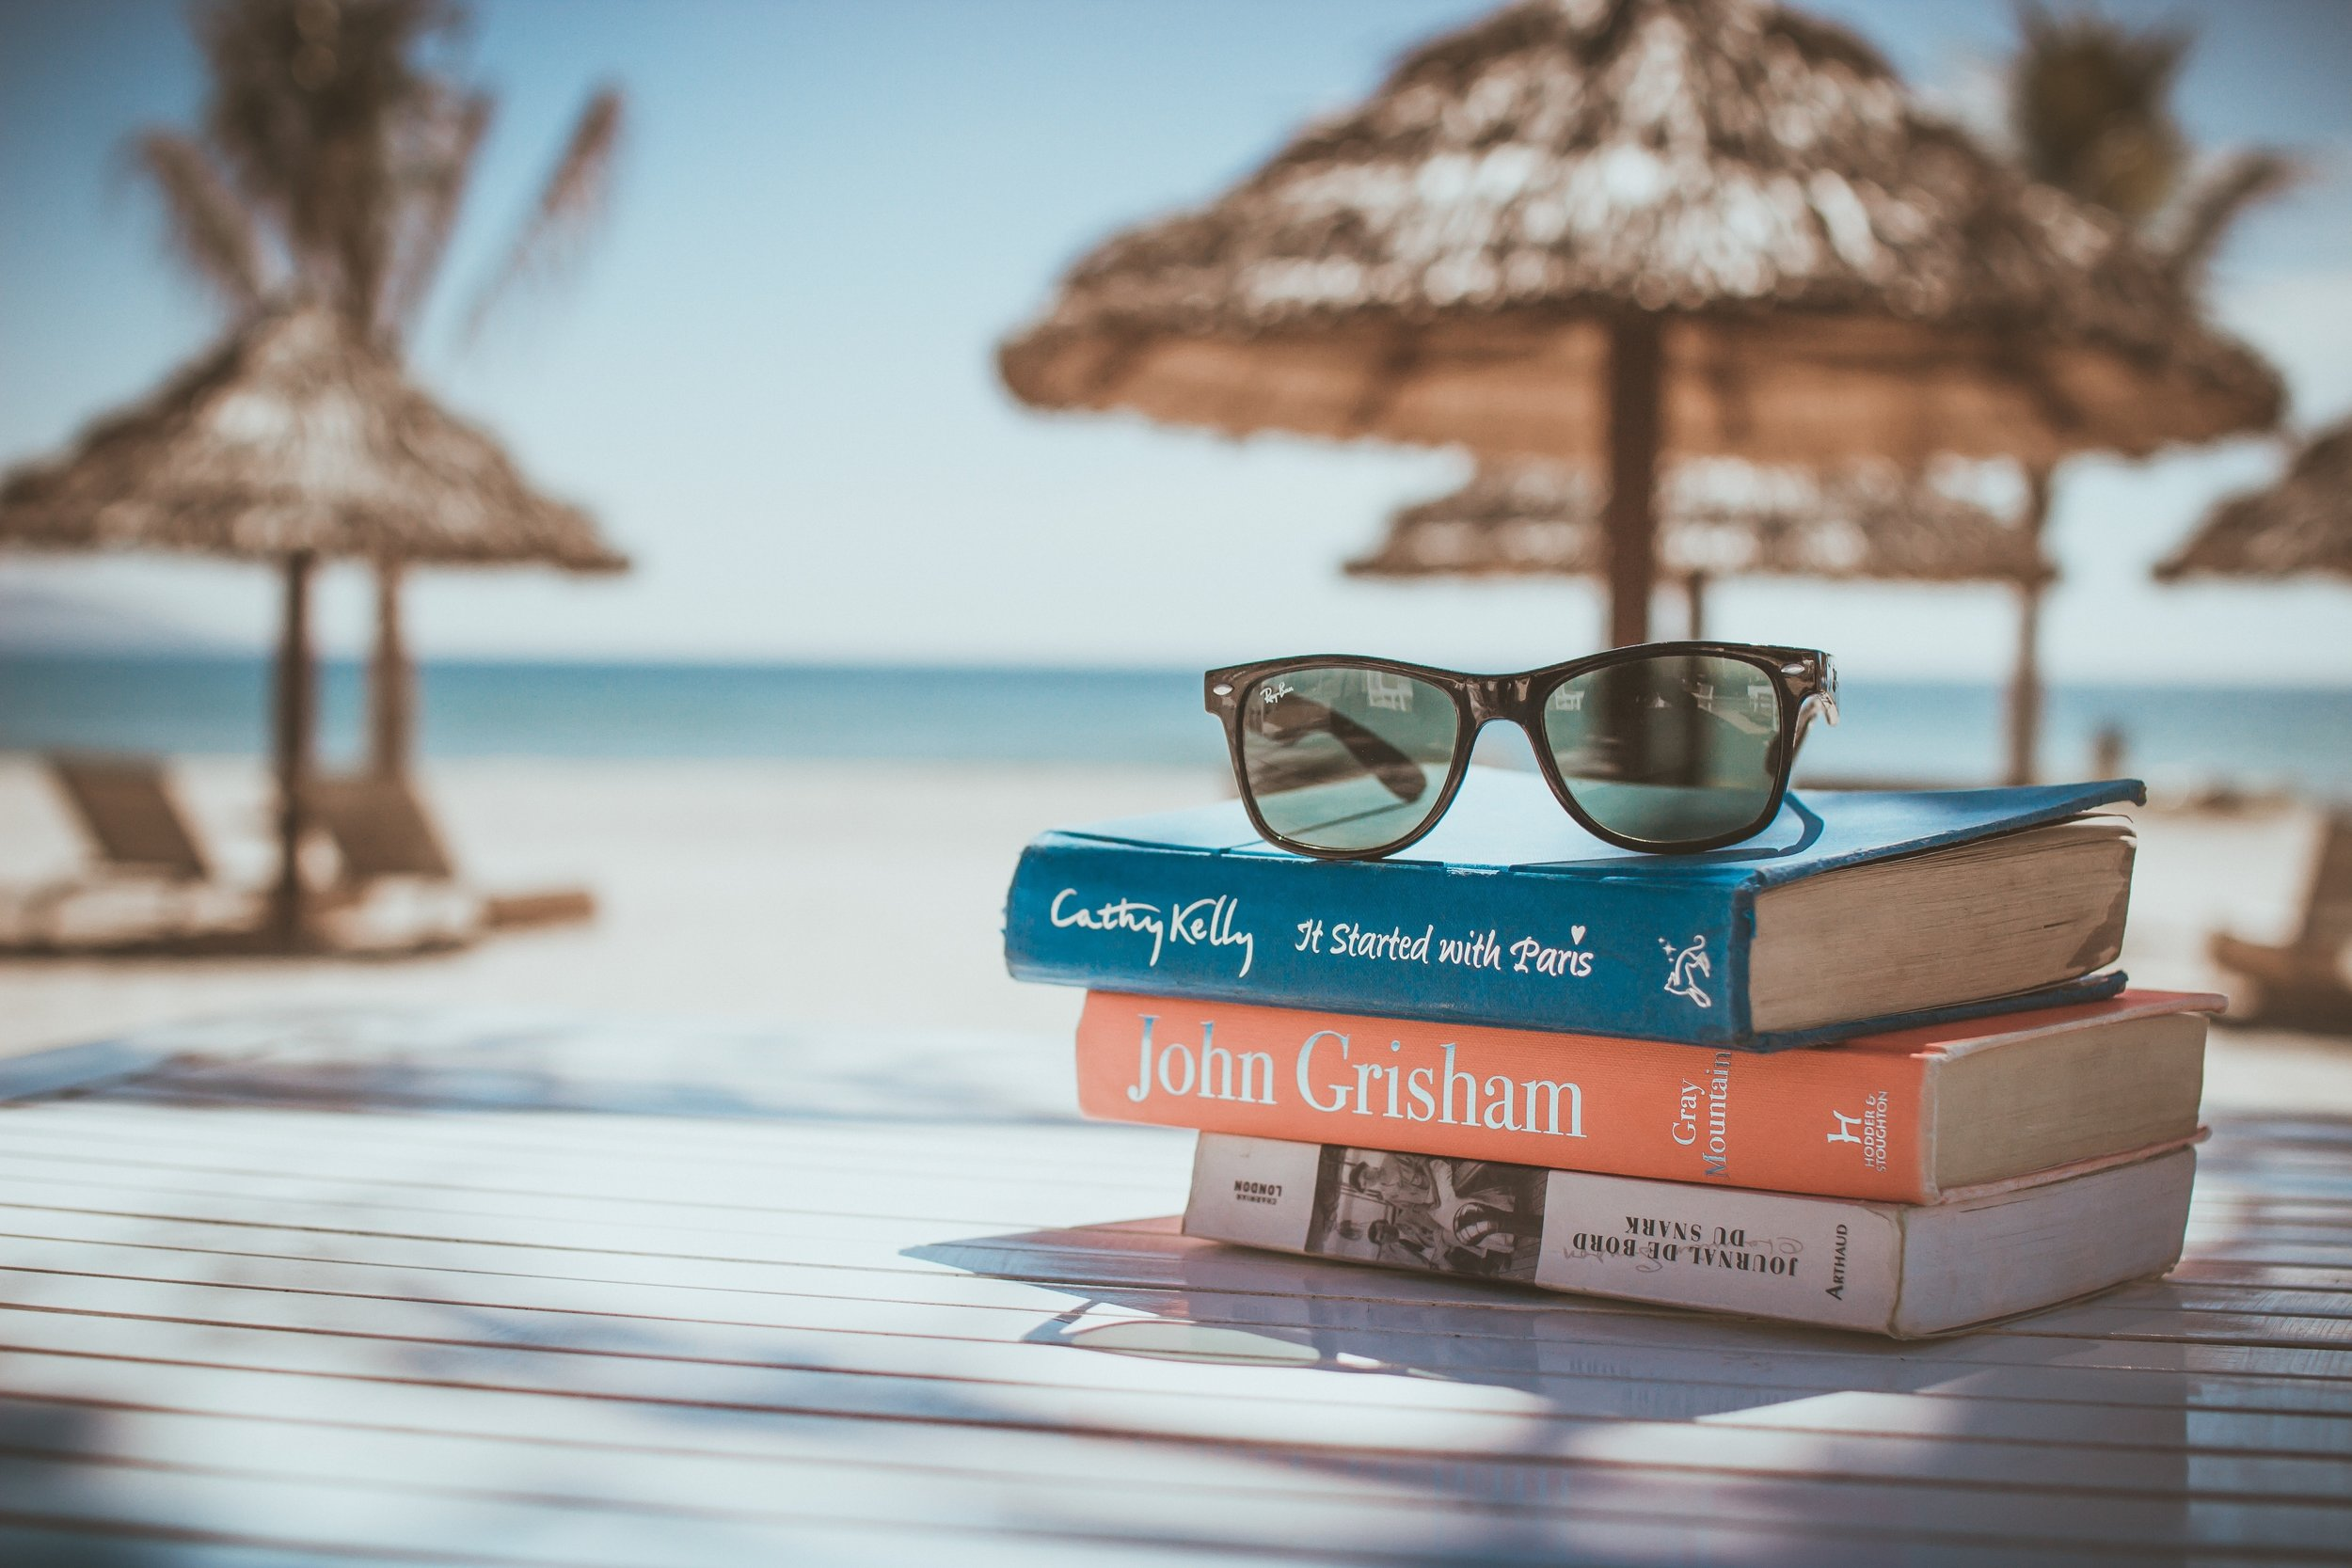 111a beach-books-eyewear-513516.jpg